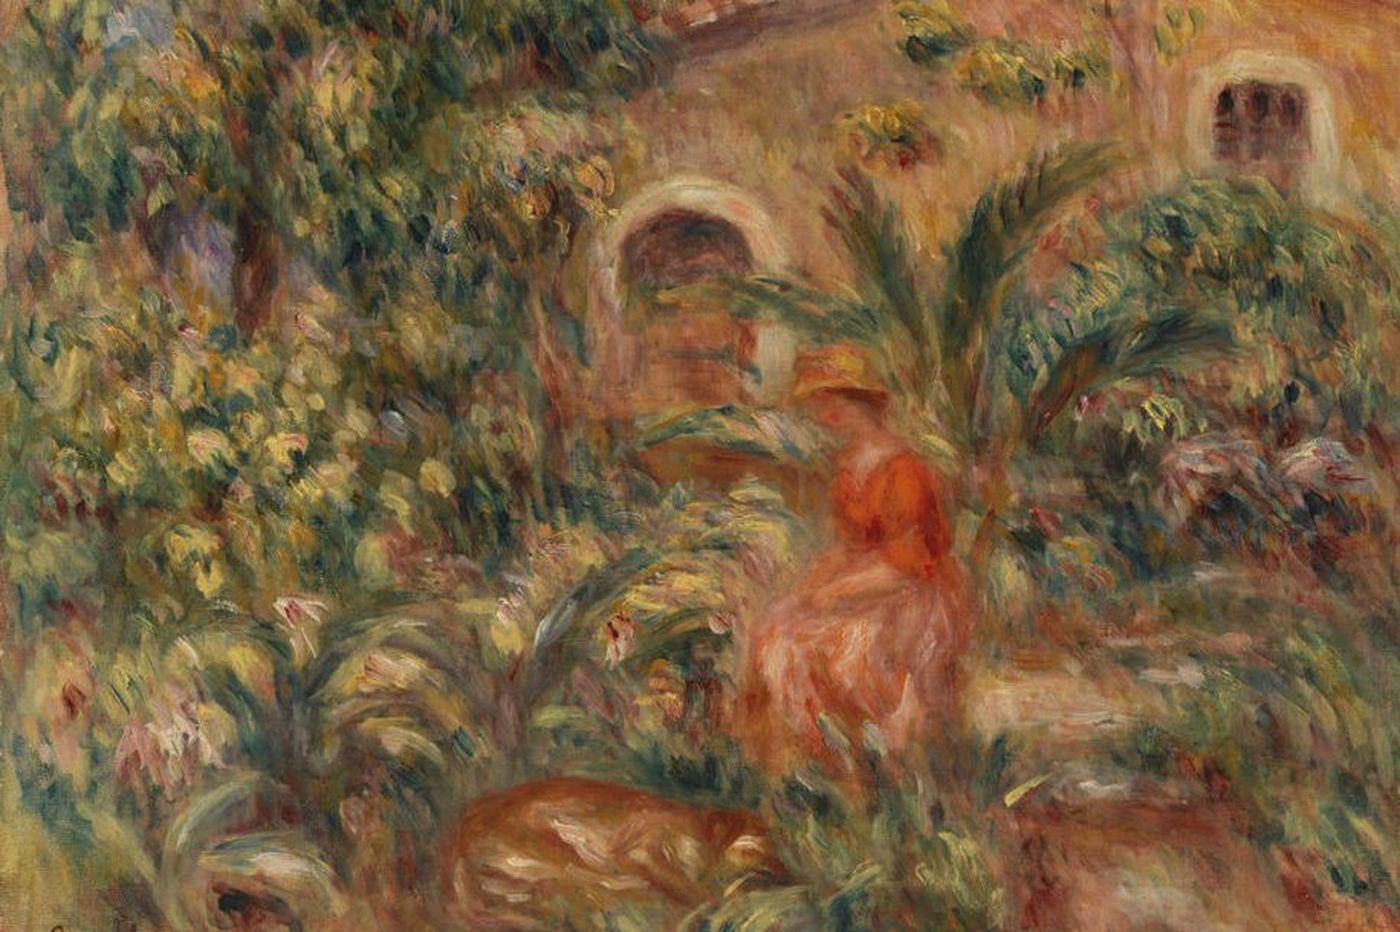 Philadelphia's art museums feature Renoir, Wyeths, Kutztown's own Keith Haring in spring 2018